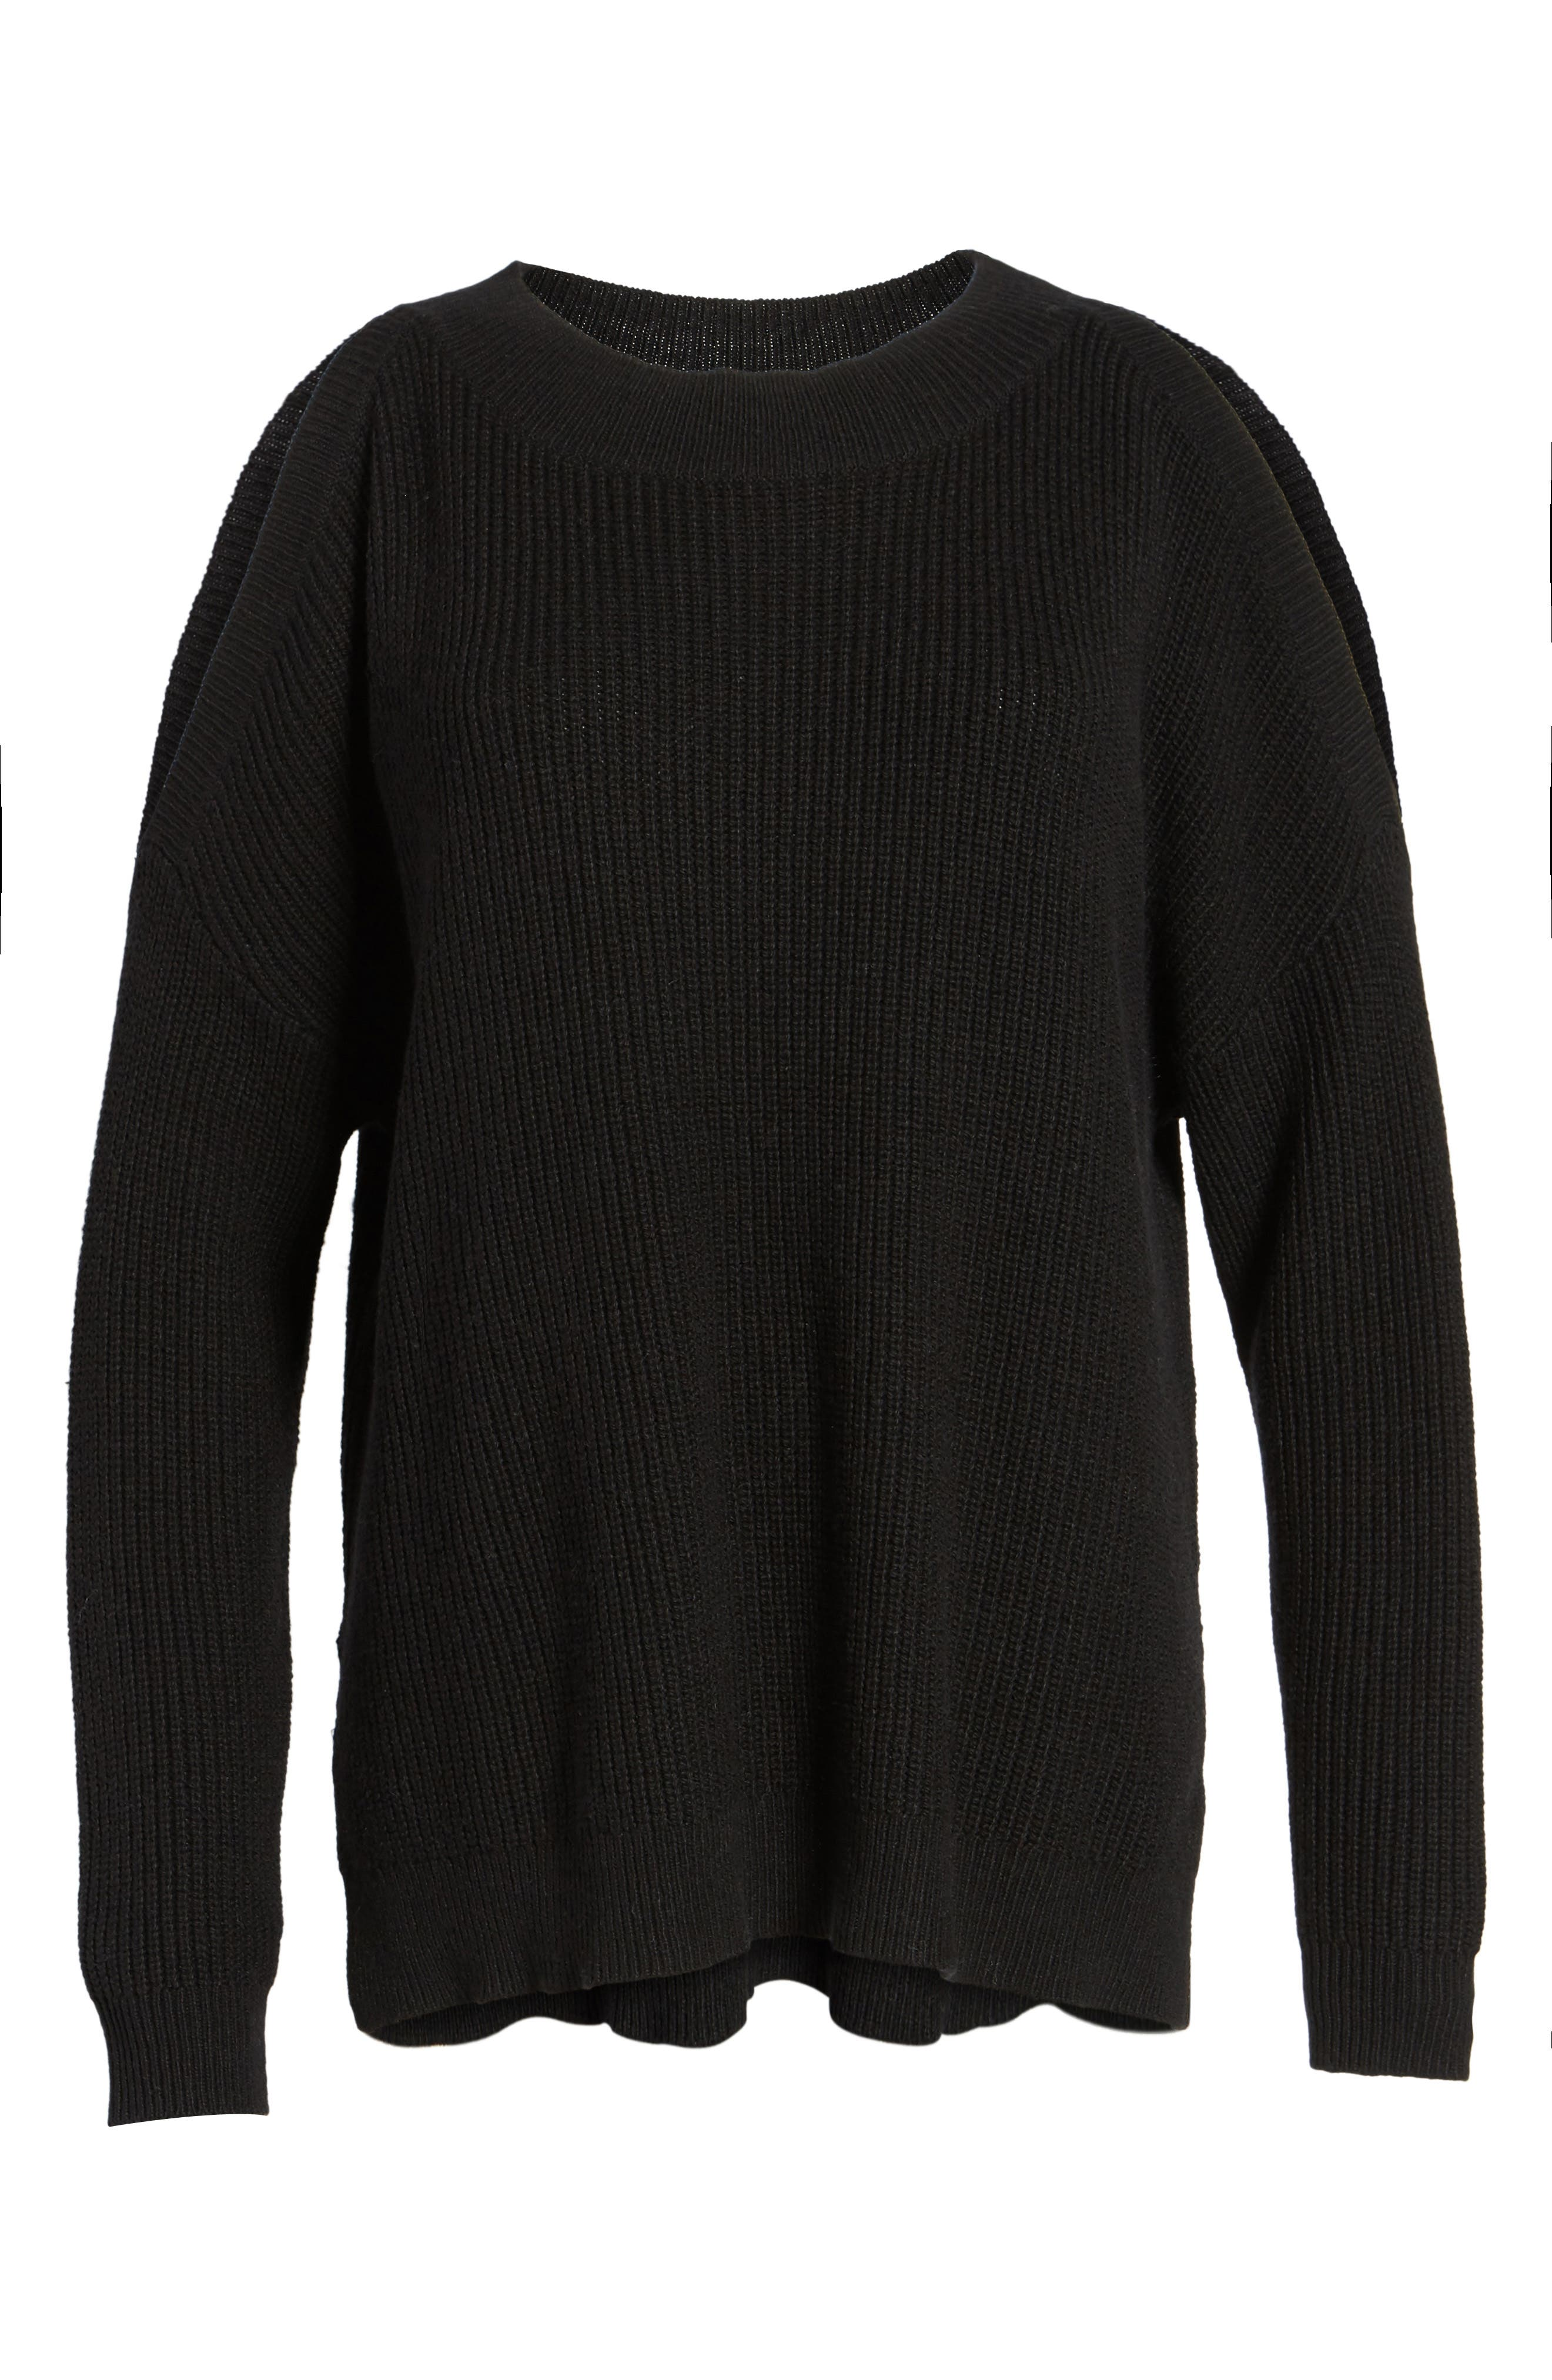 Cold Shoulder Tunic Sweater,                             Alternate thumbnail 6, color,                             001